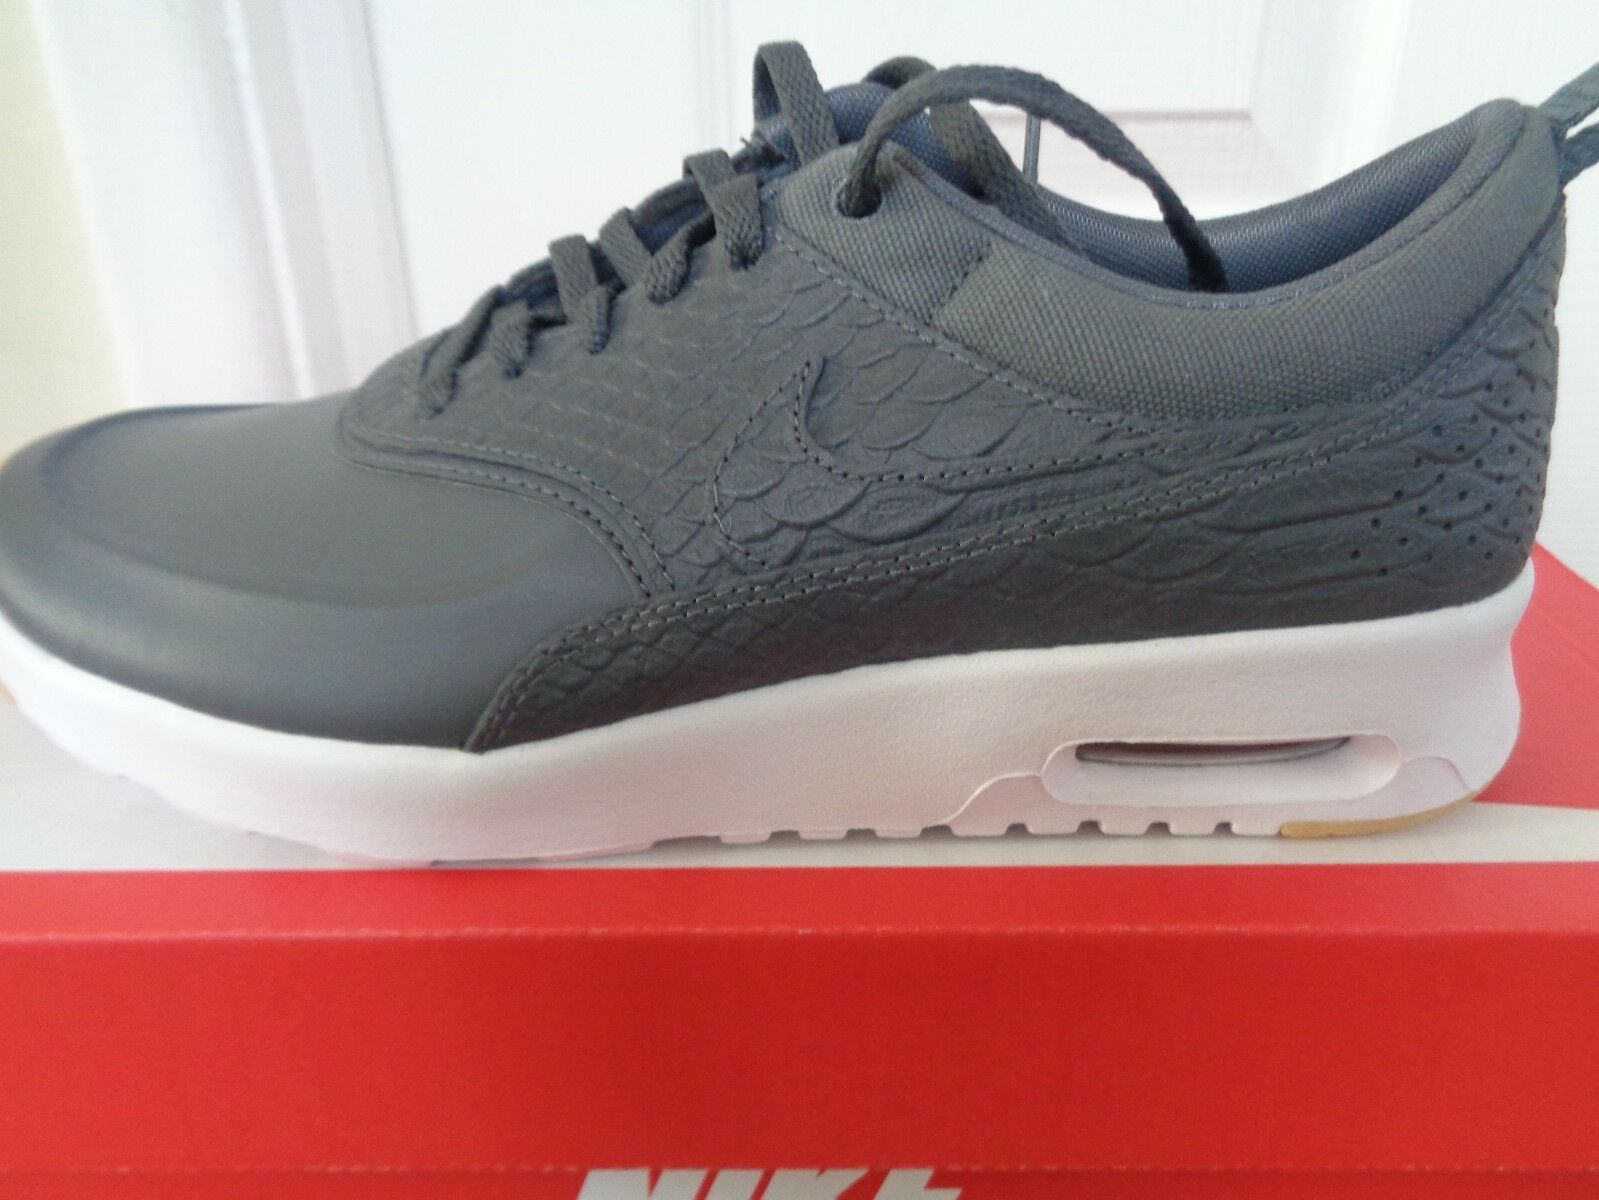 Nike Air Max Thea PRM uk womens trainers 616723 015 uk PRM 4.5 eu 38 us 7 NEW+BOX decdd6